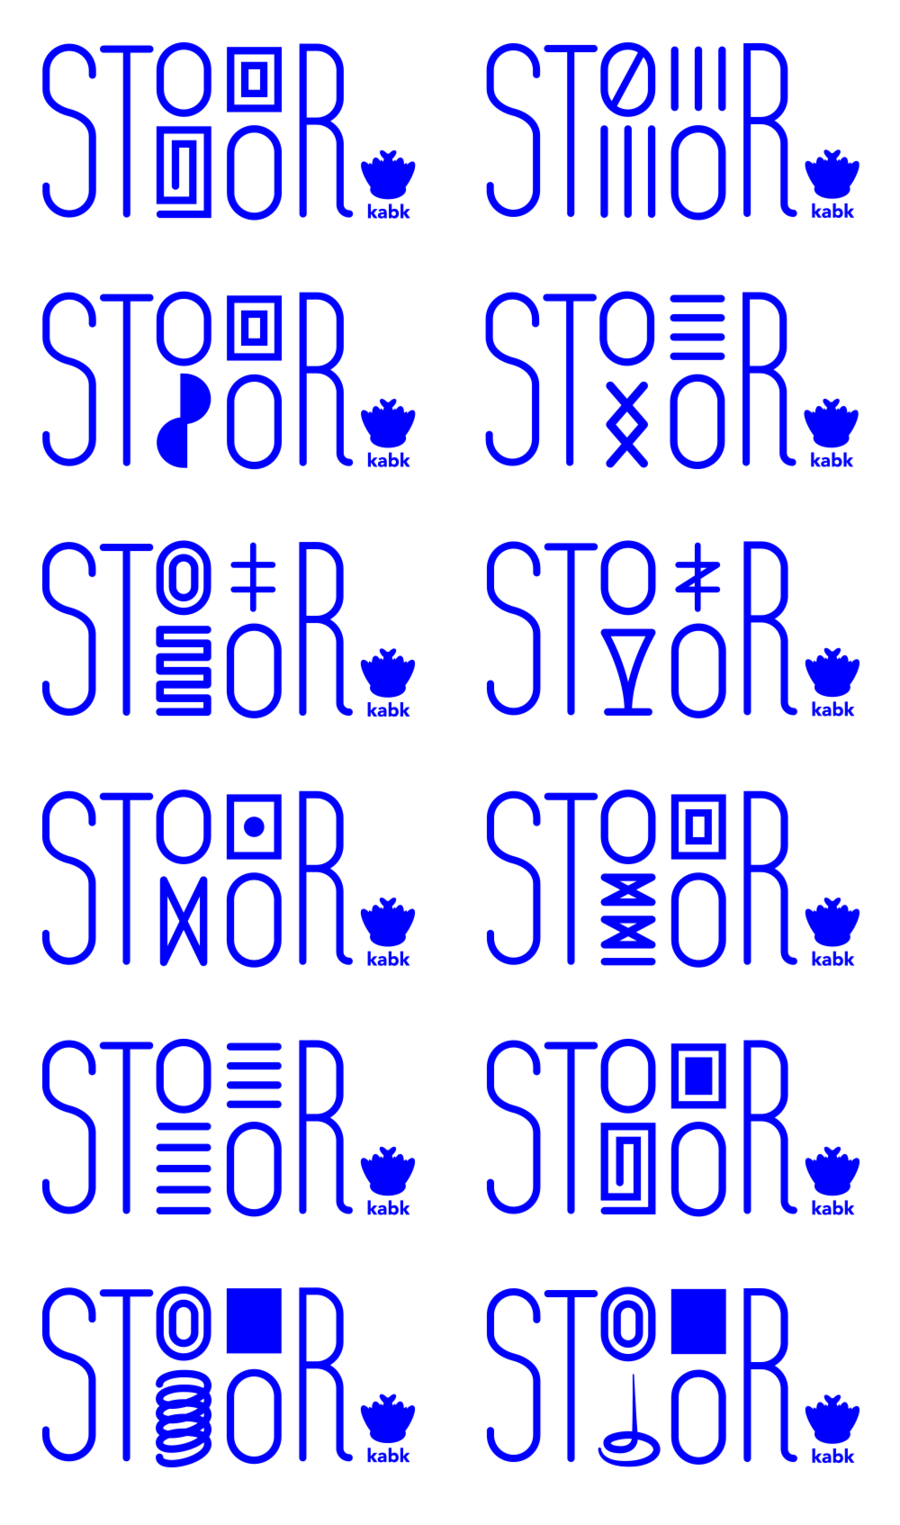 Stoor logo sheet catalogue 2x